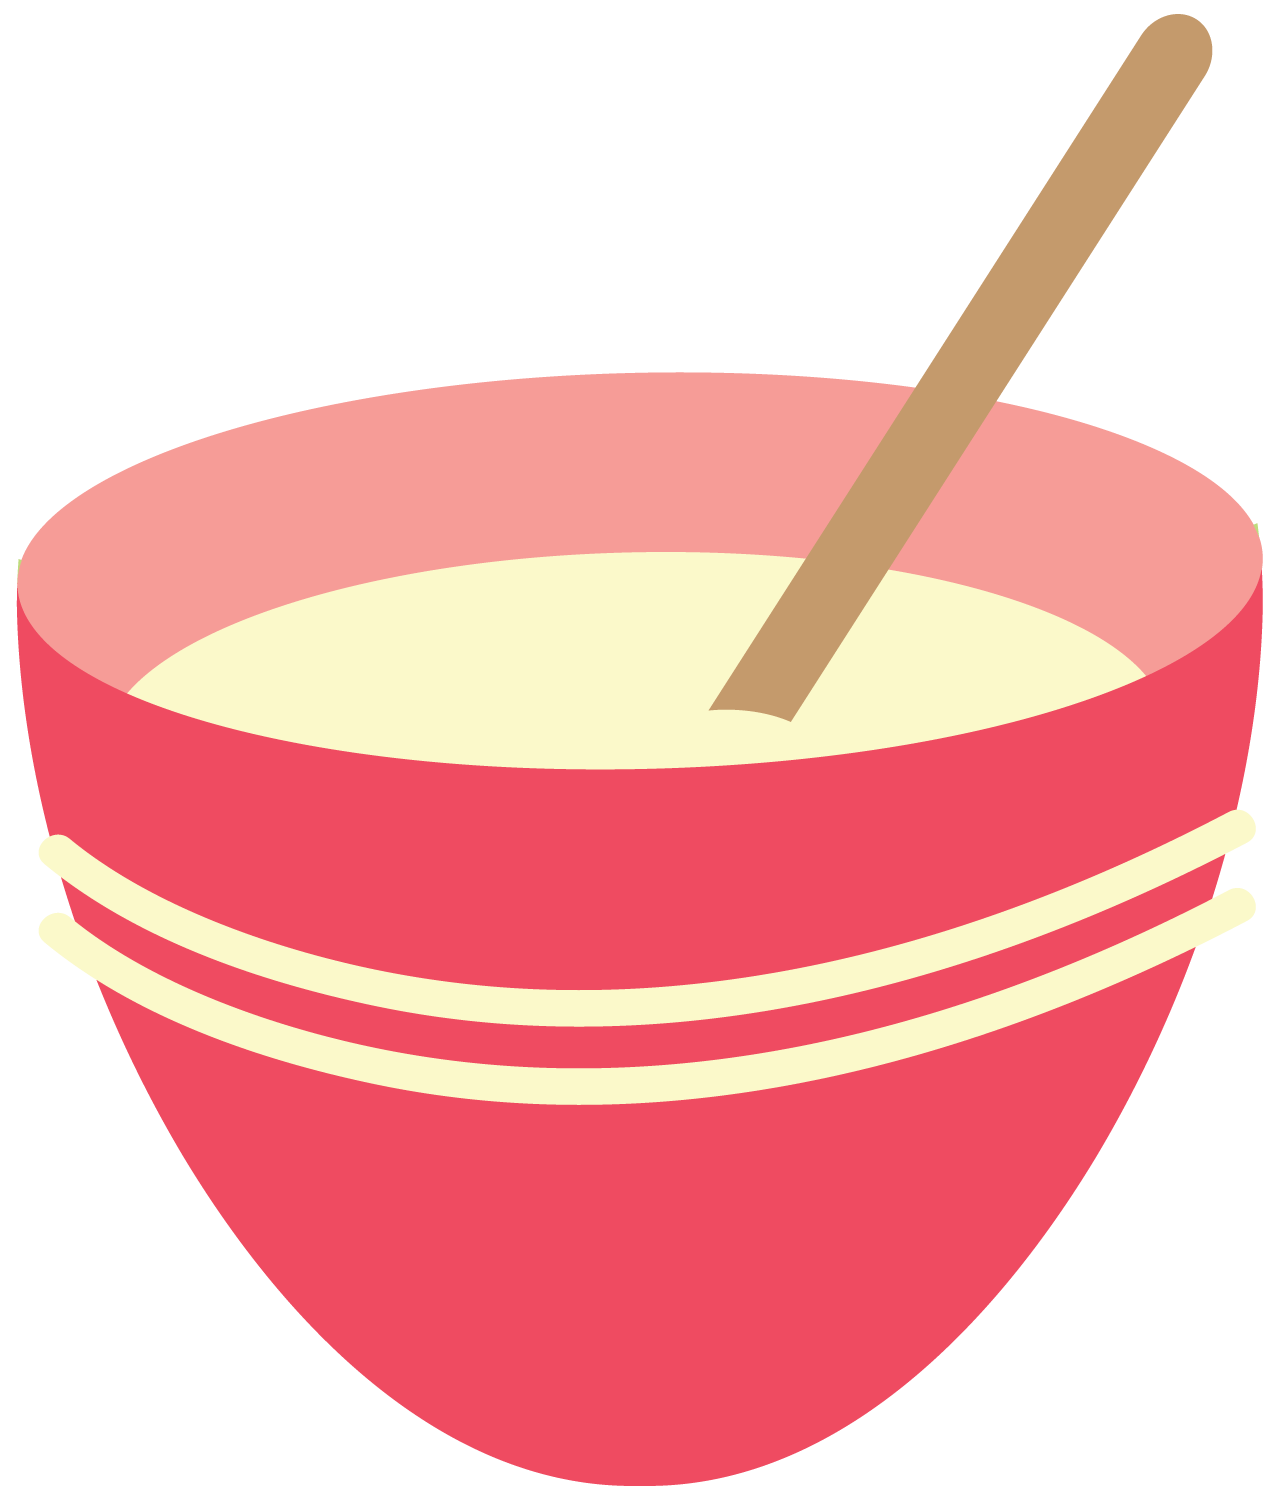 png freeuse download Pin by naenae nanny. Bowl clipart recipe